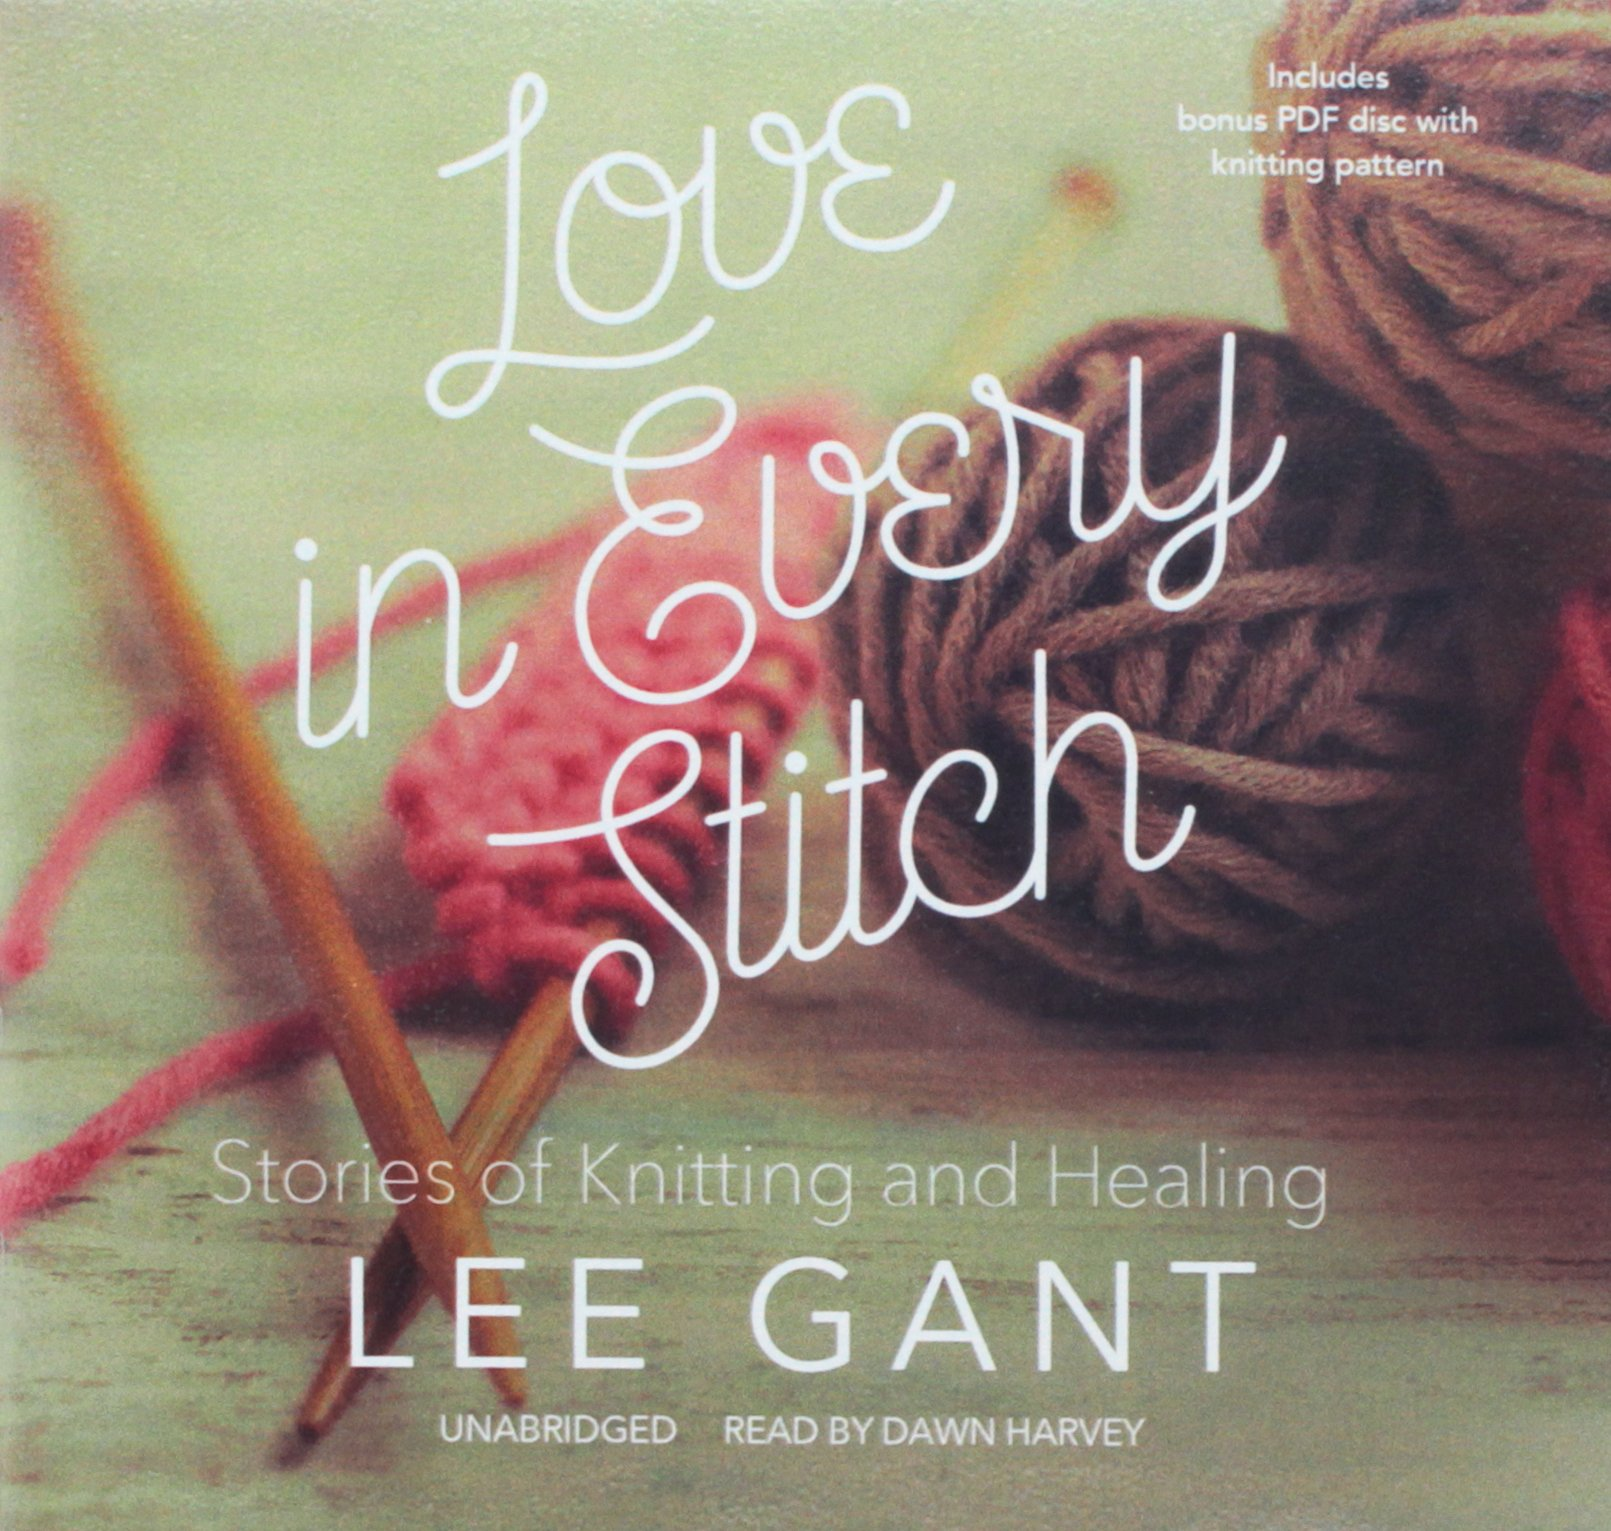 Love in Every Stitch: Stories of Knitting and Healing: Library Edition: Includes PDF Disc